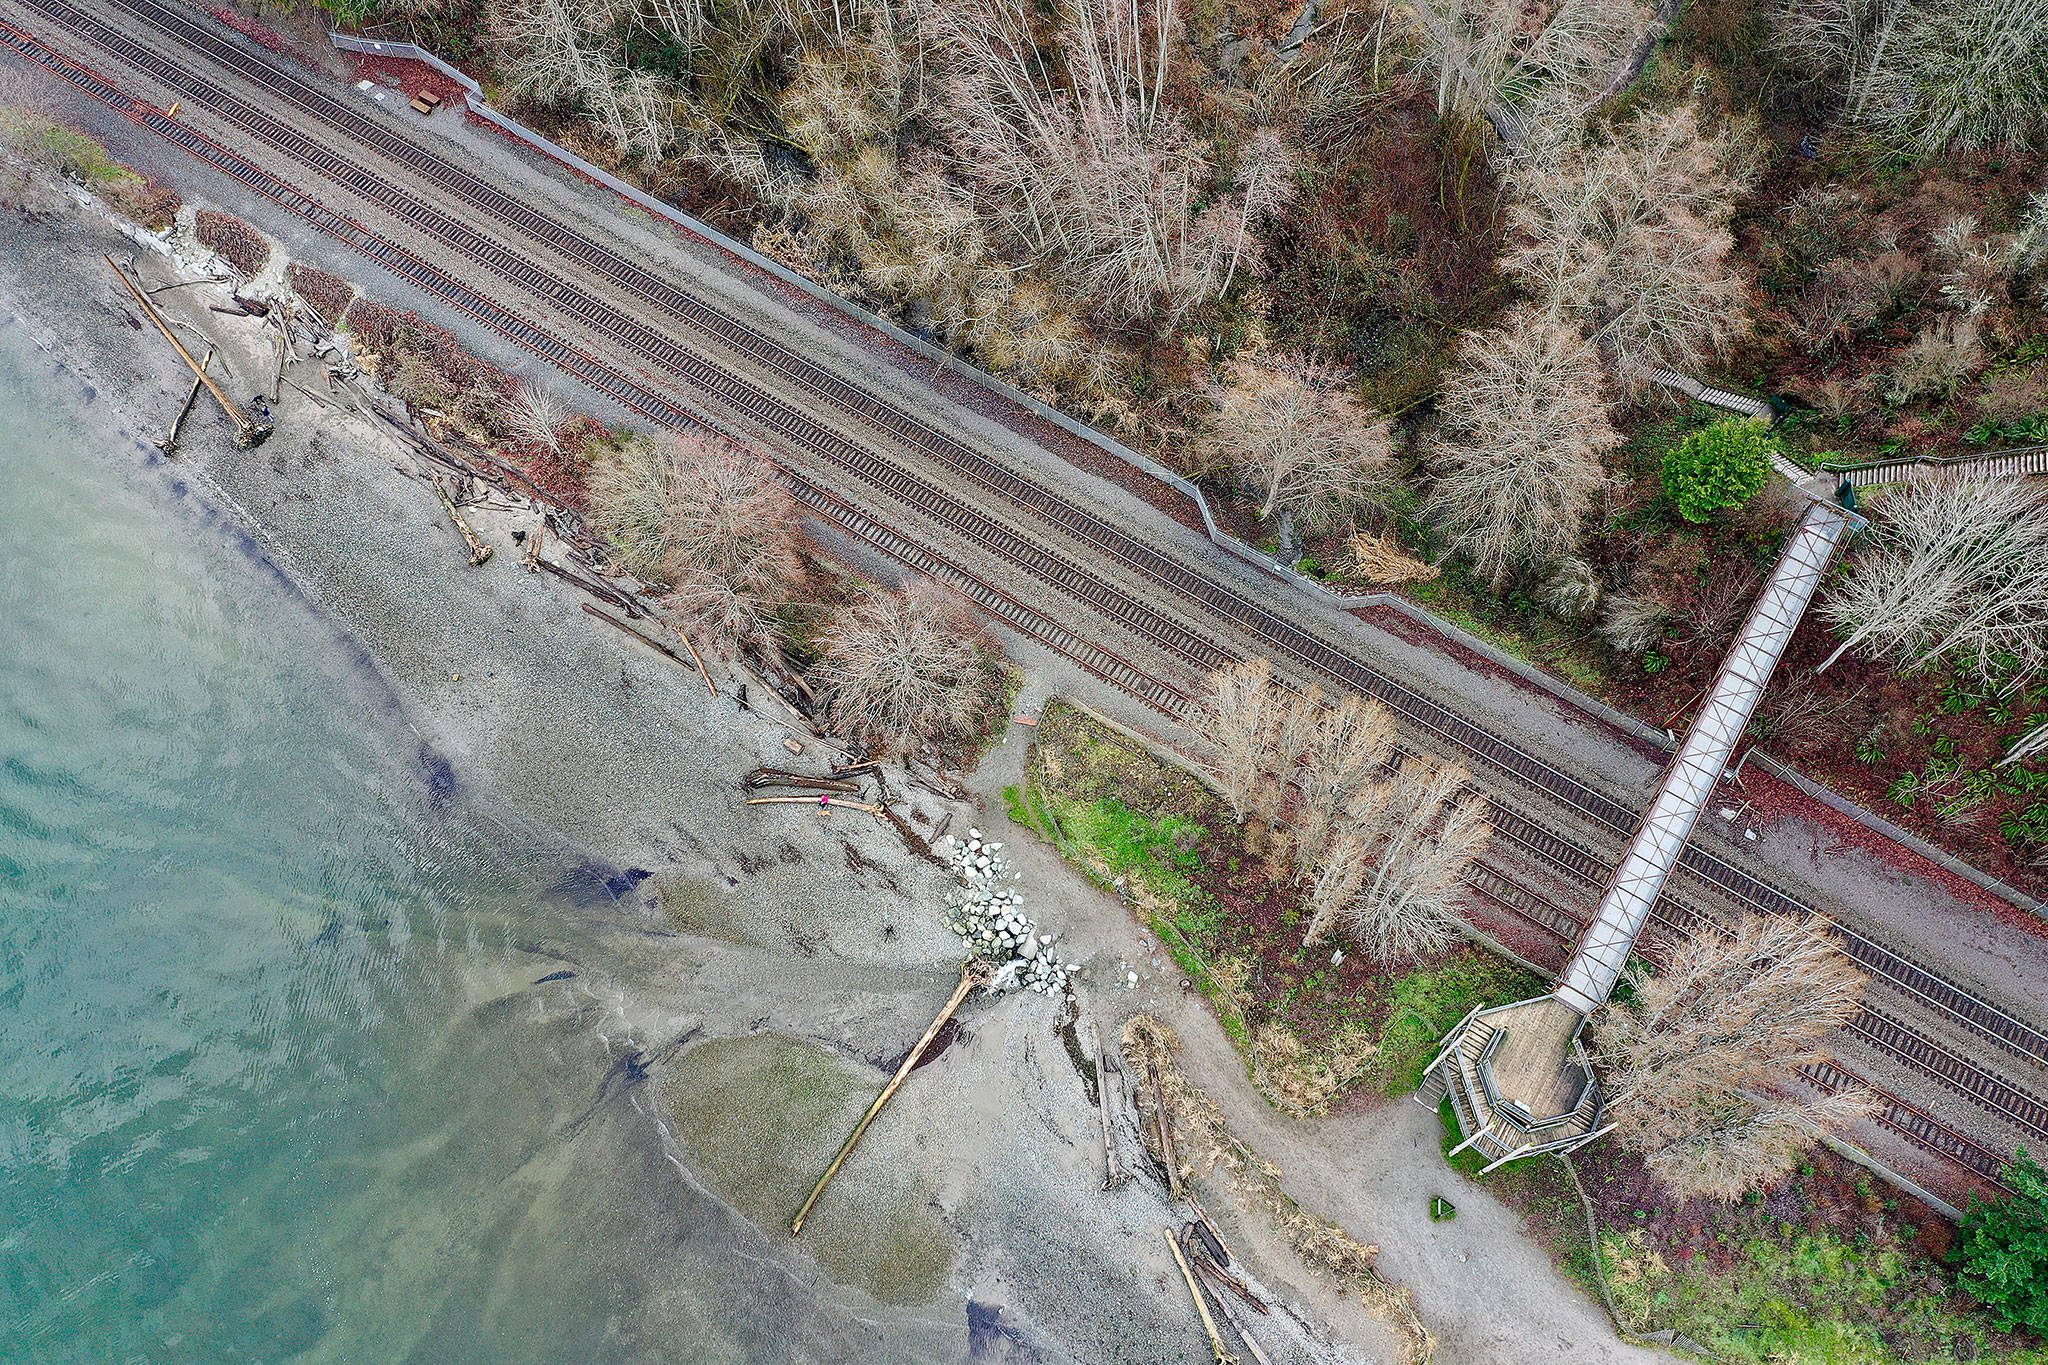 The beach at Howarth Park in Everett, as seen from a drone. At right is the pedestrian bridge over the BNSF Railway tracks. (Chuck Taylor / The Herald)